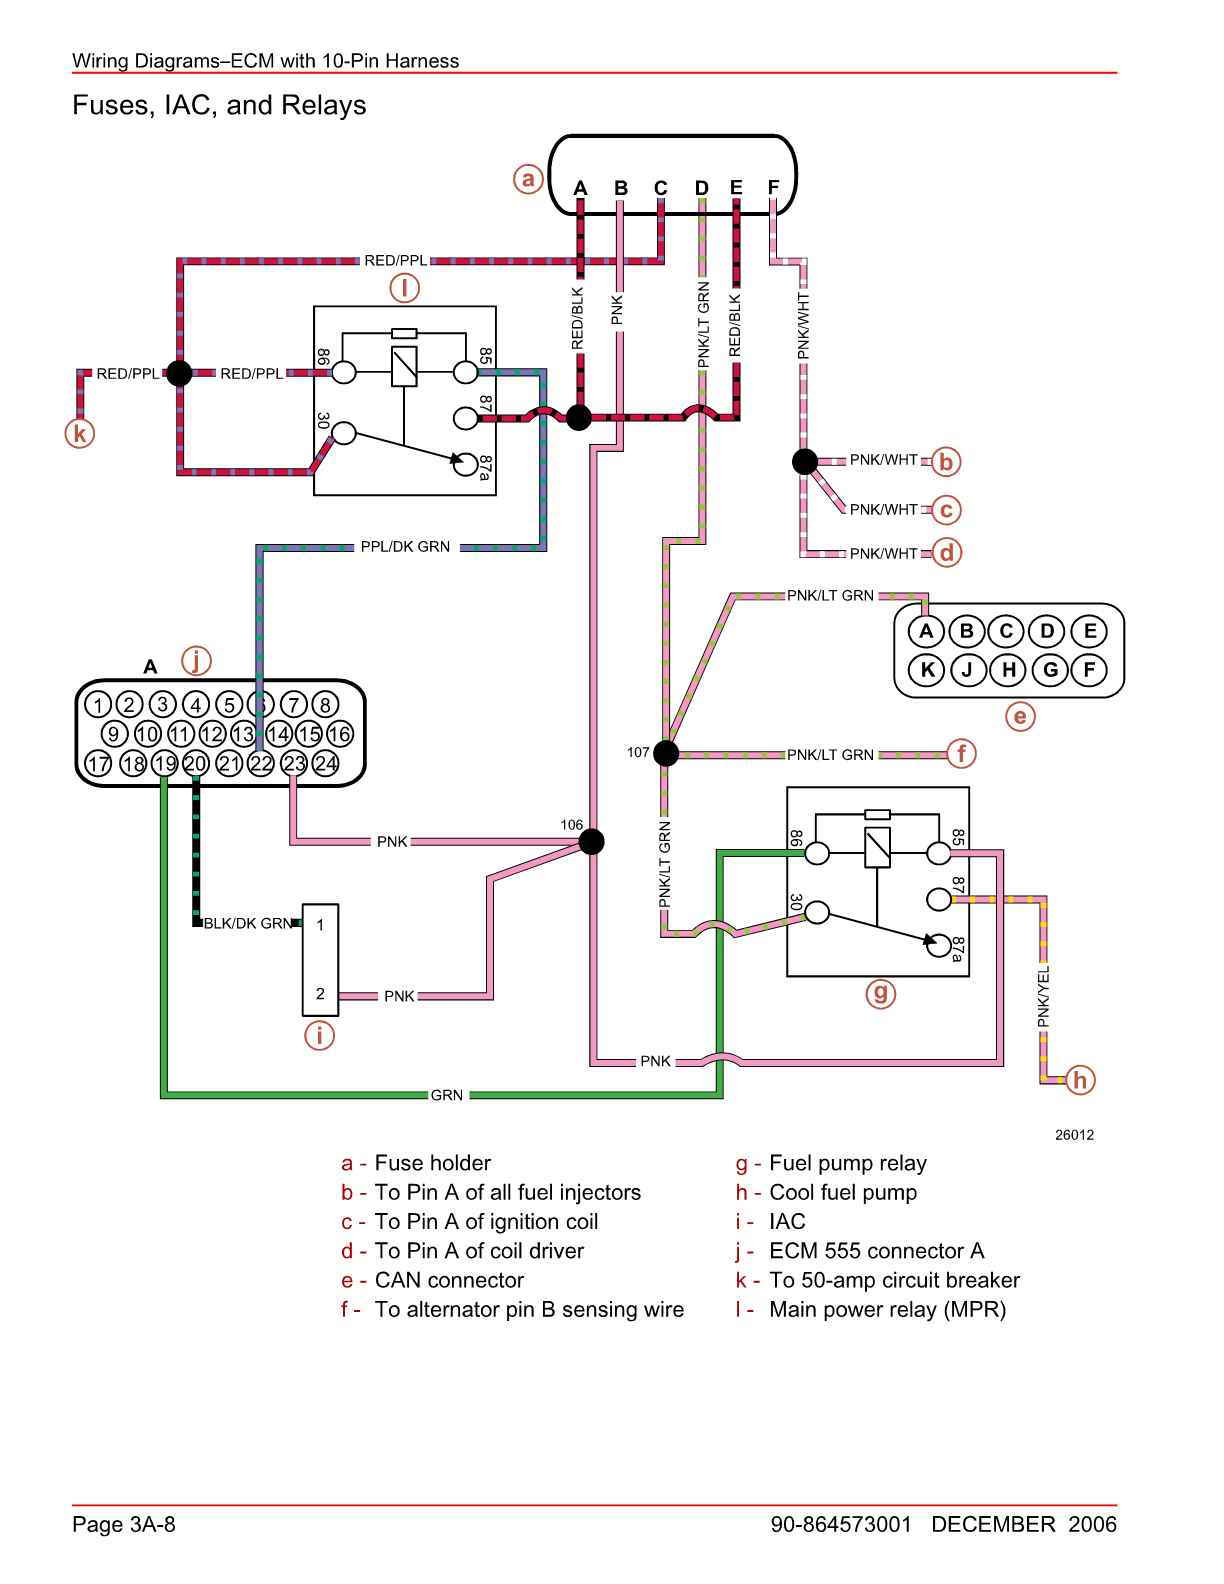 Flat Plug Wiring Diagram To Gm Square Iac Fuse Box Mercruiser 350 Mag General Electric Panel On Problems Starting And Running 57l Mpi Page 2